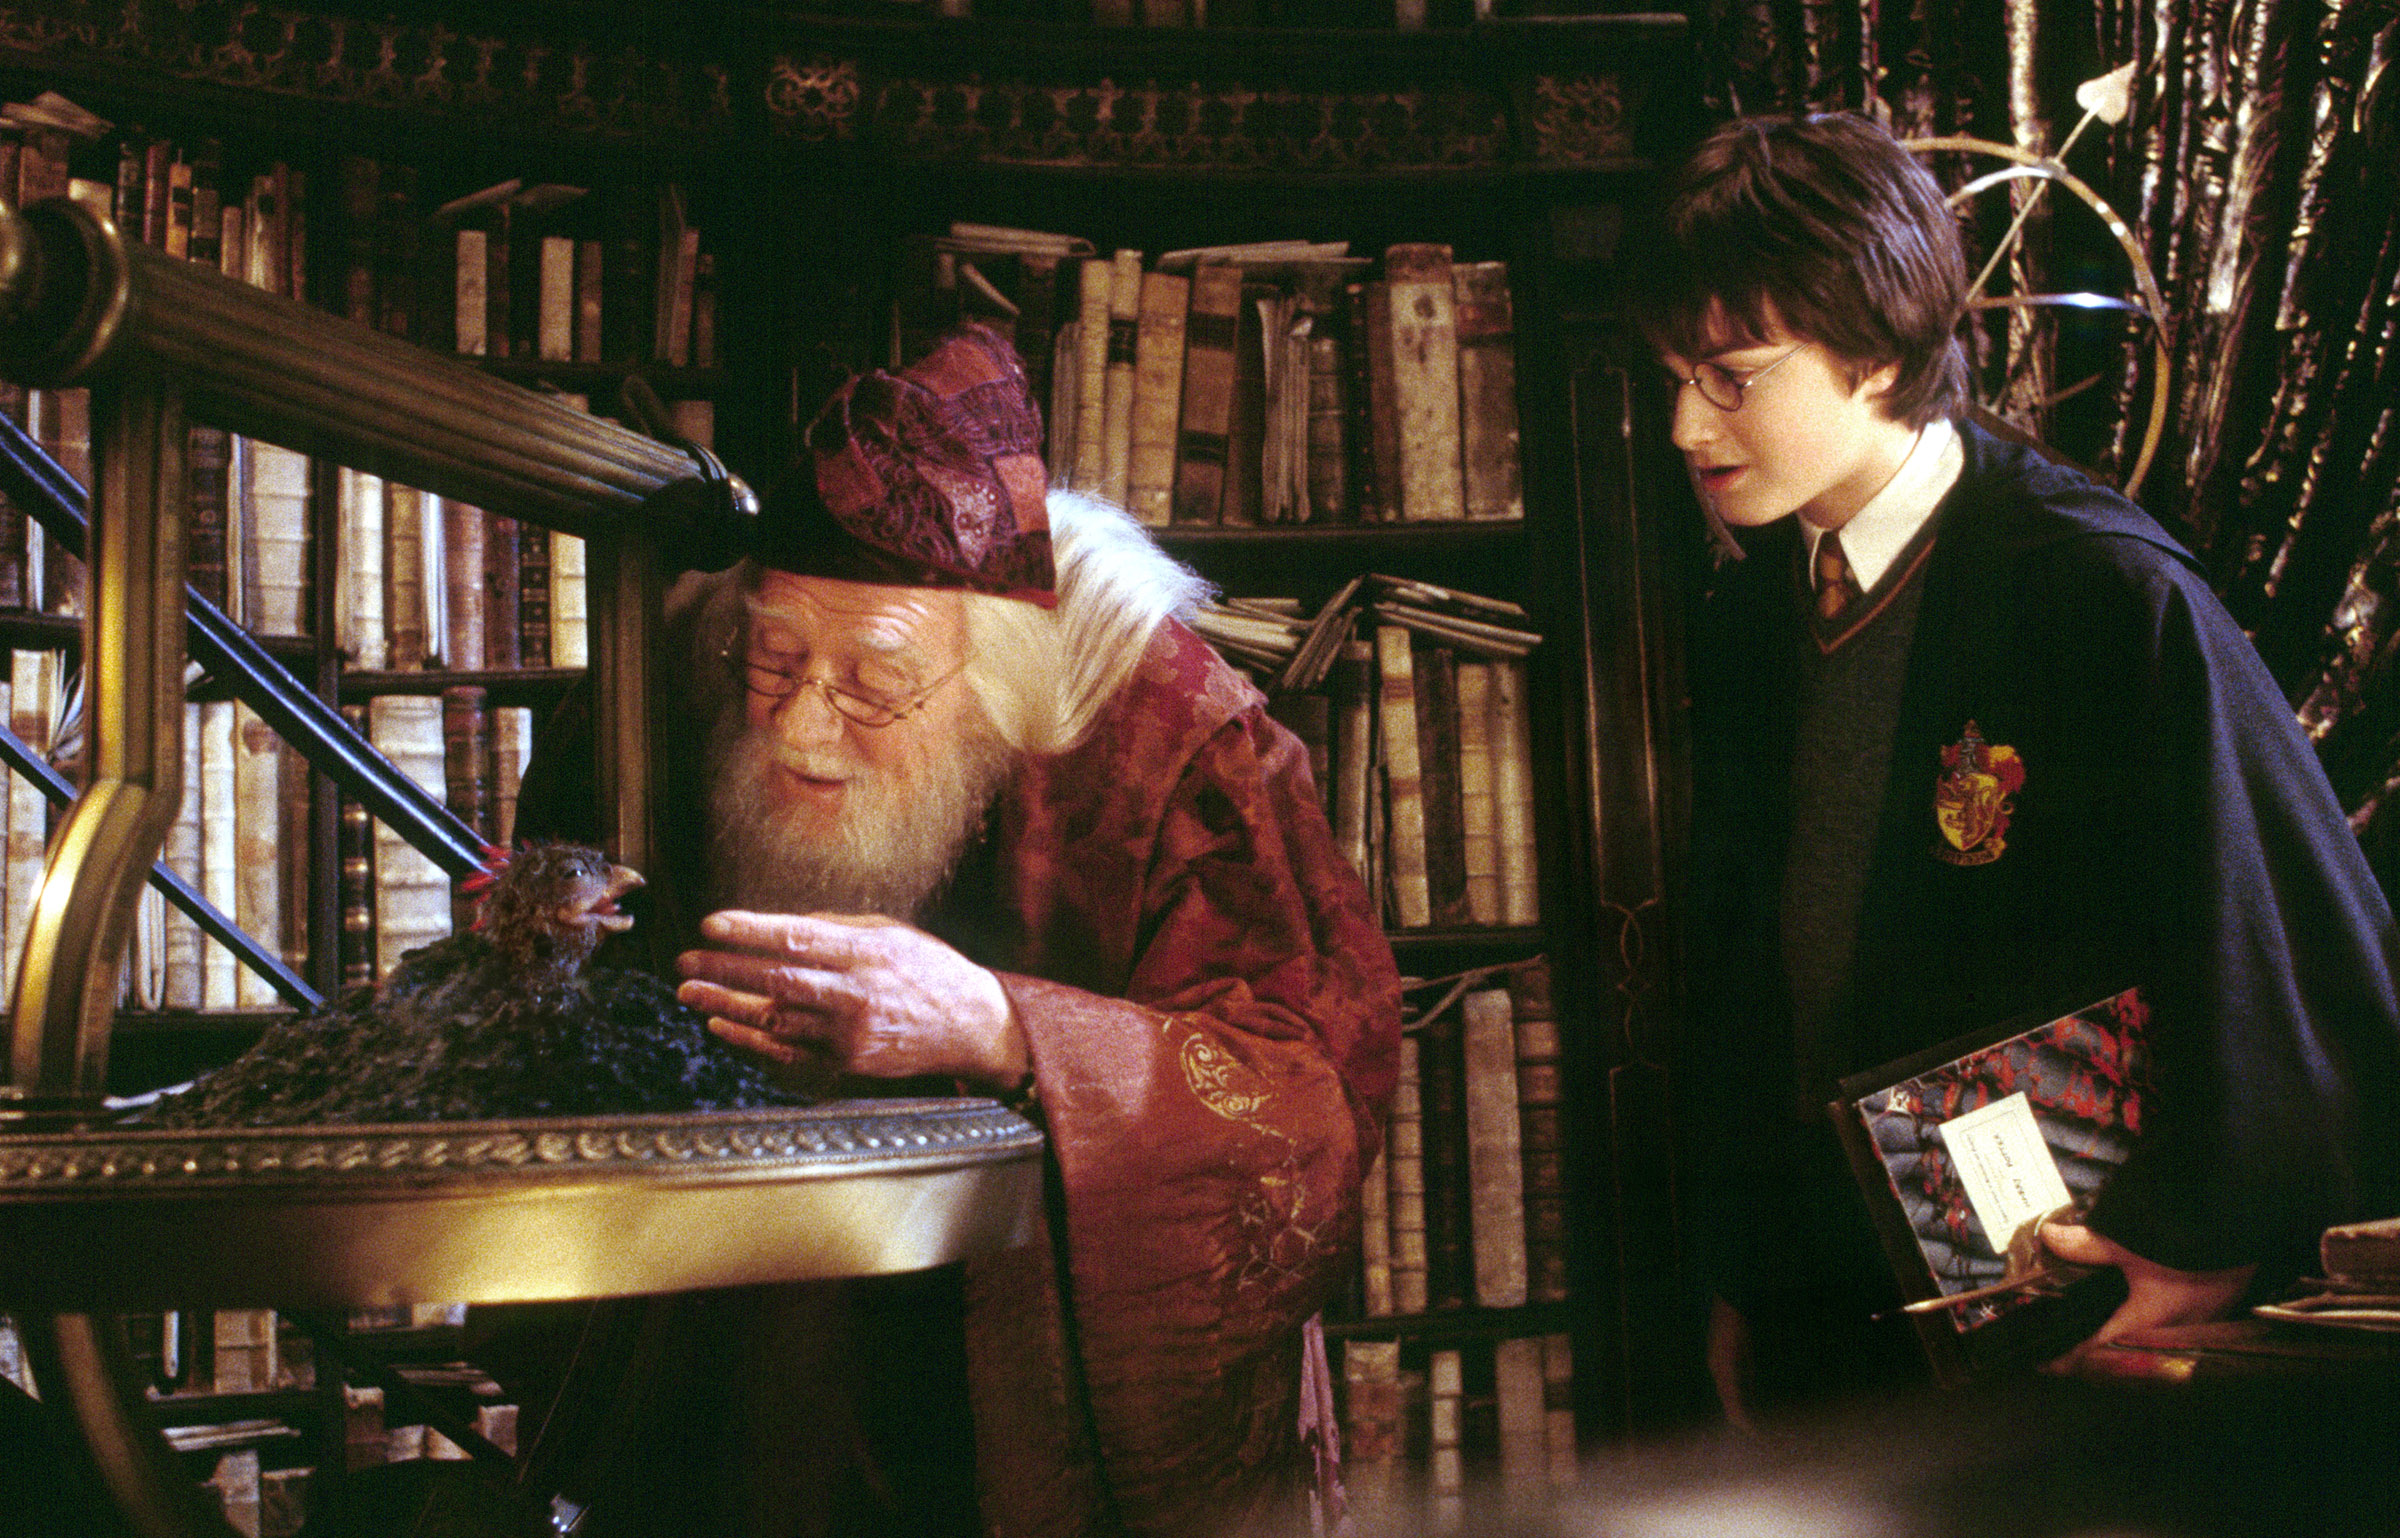 """Harry Potter (Daniel Radcliffe) watches as Professor Dumbledore (Richard Harris) feeds Fawkes the Phoenix in the movie, """"Harry Potter and the Chamber of Secrets."""""""